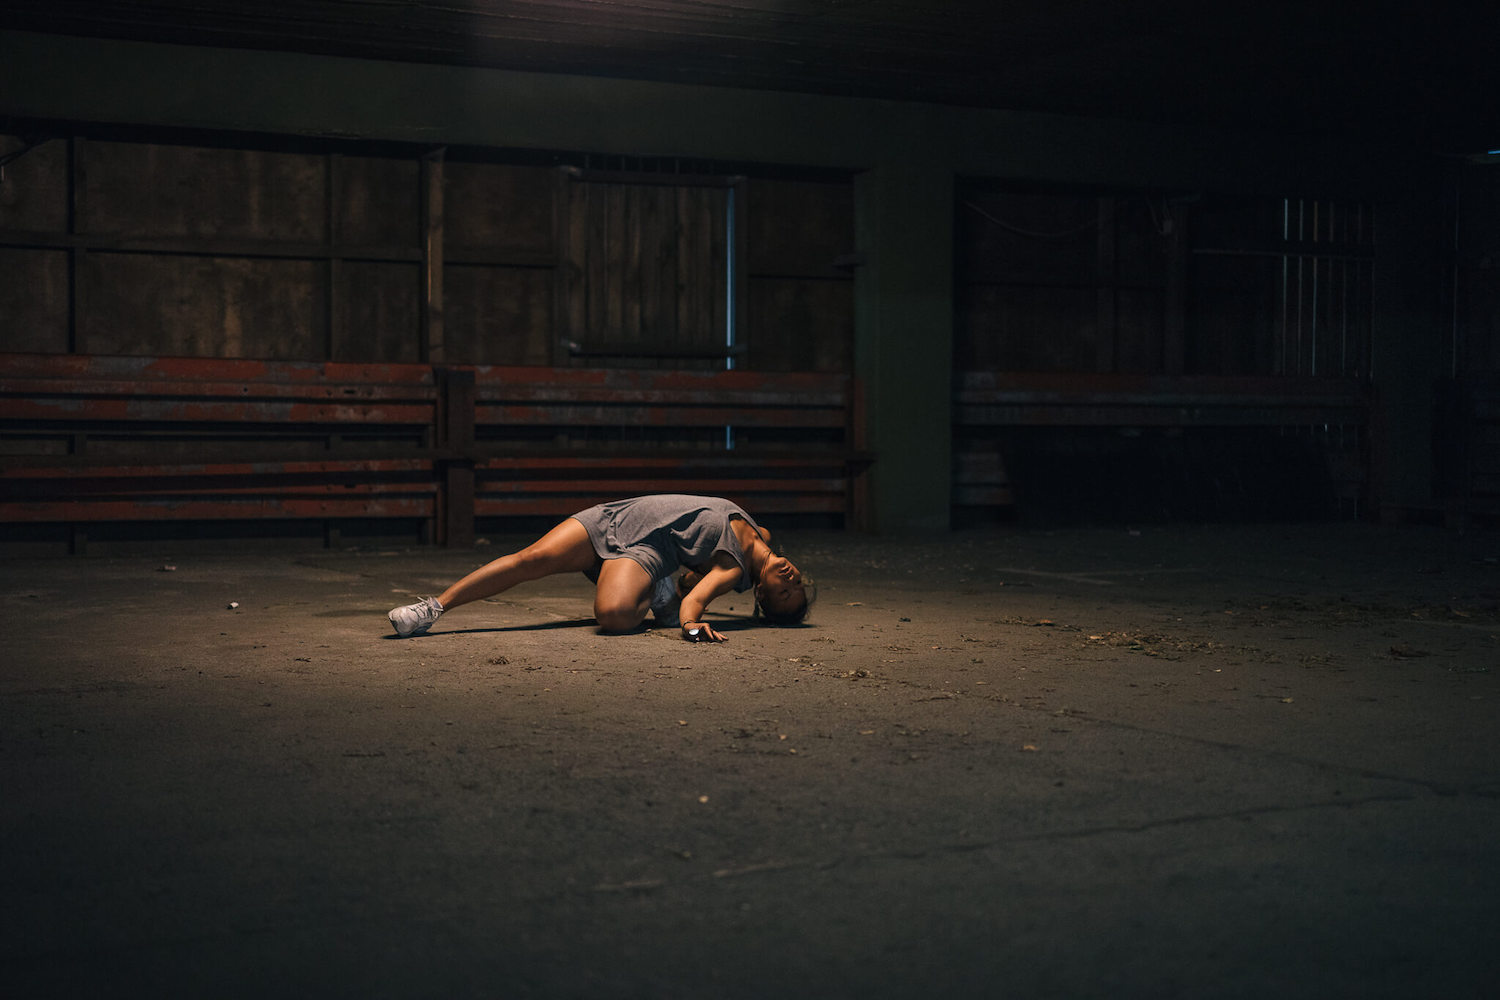 A girl dancing on the ground in the middle of a dark empty street.